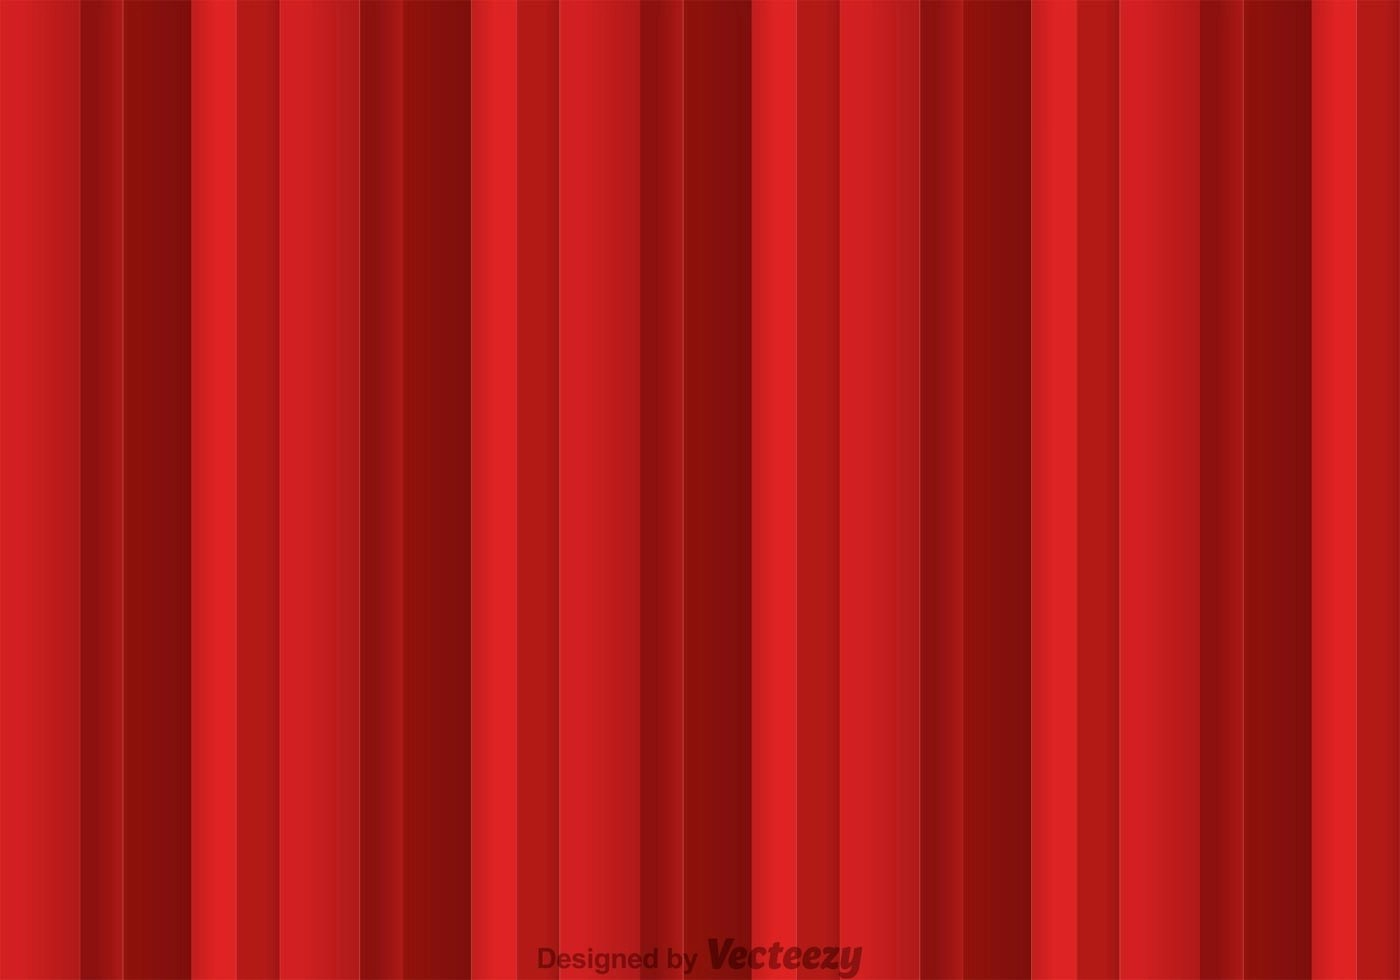 Silver Animal Print Wallpaper Red Maroon Line Background Download Free Vector Art